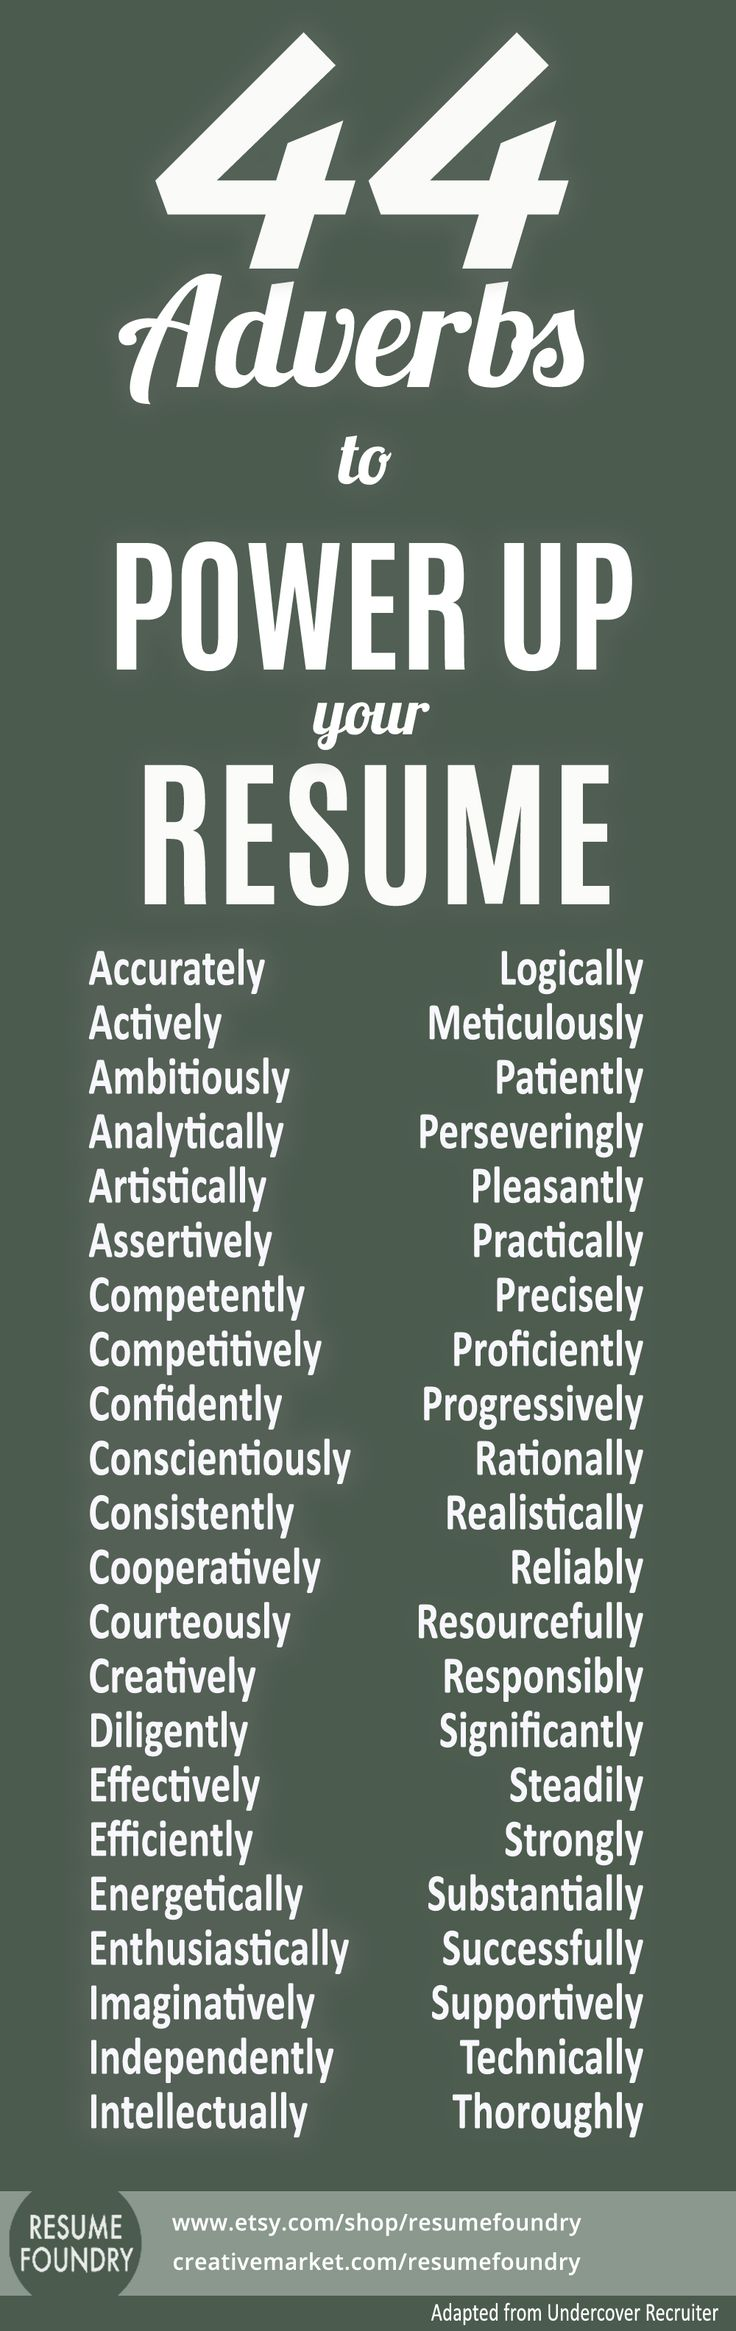 The Resume Pdf Best  Job Resume Samples Ideas On Pinterest  Resume Examples  Resume Skills Example Word with Professional Skills To List On Resume Resume Tips Resume Skill Words Resume Verbs Resume Experience Operations Supervisor Resume Excel